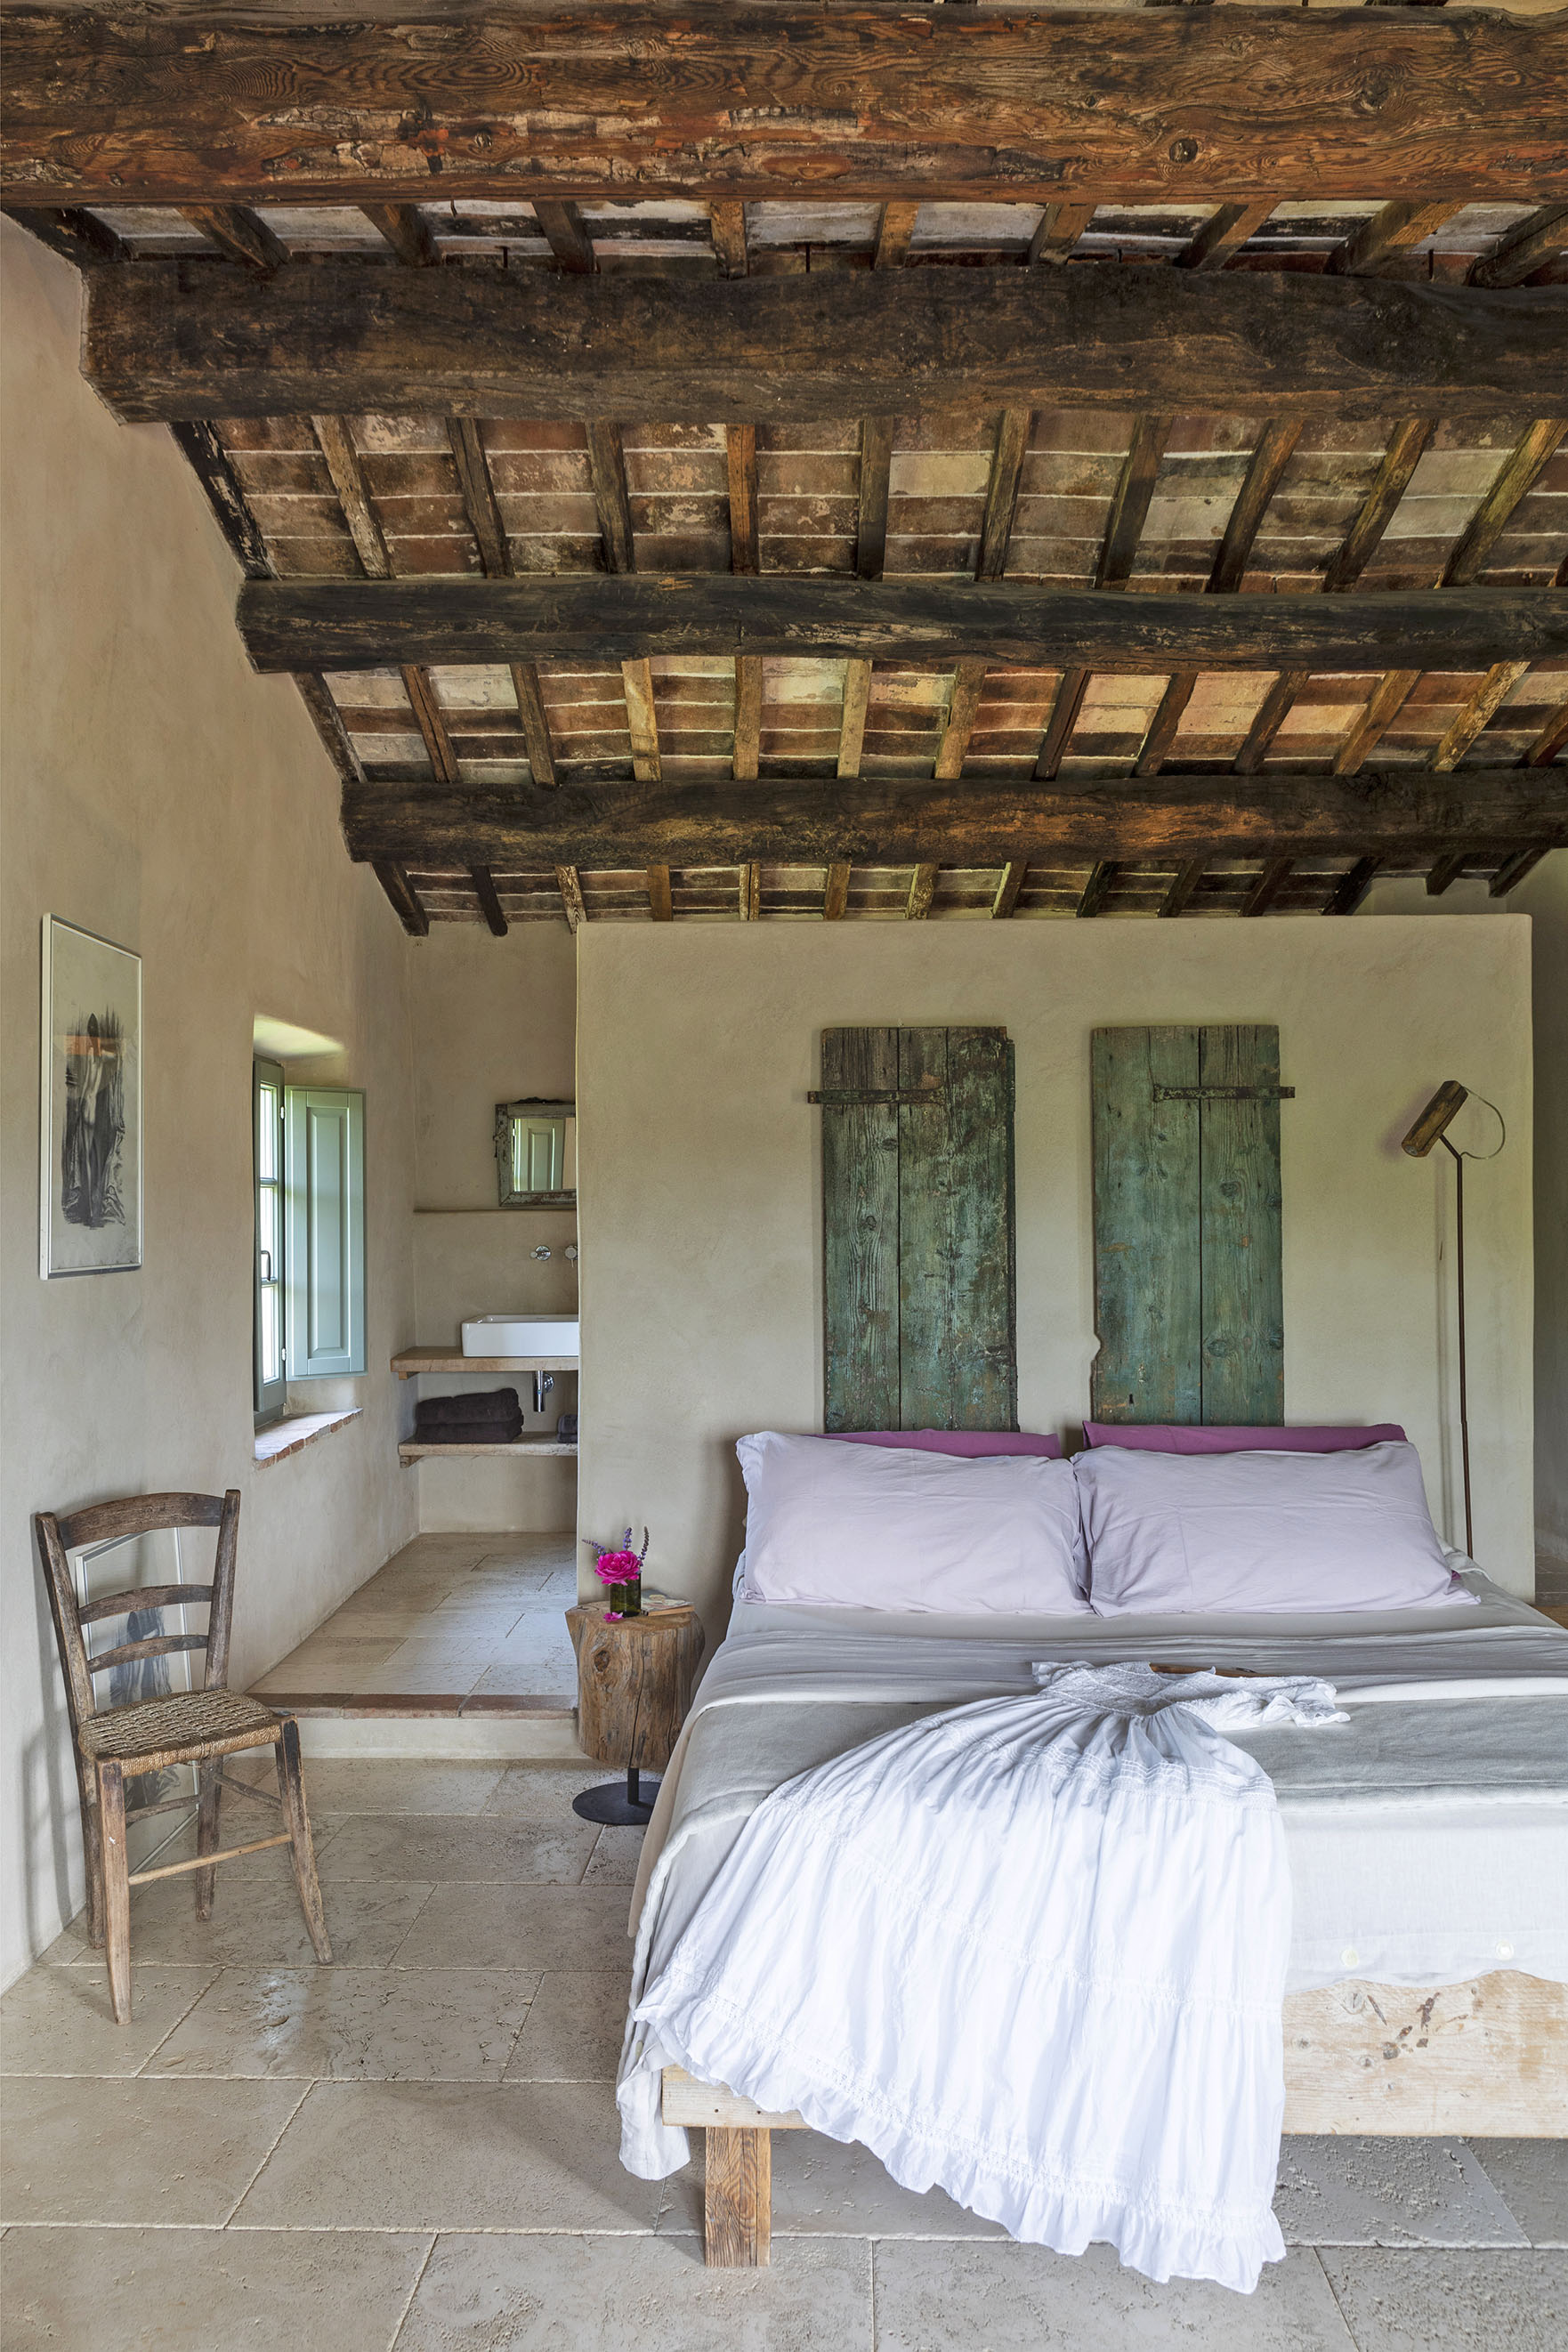 Bedrooms have a rustique elegance as the French would say